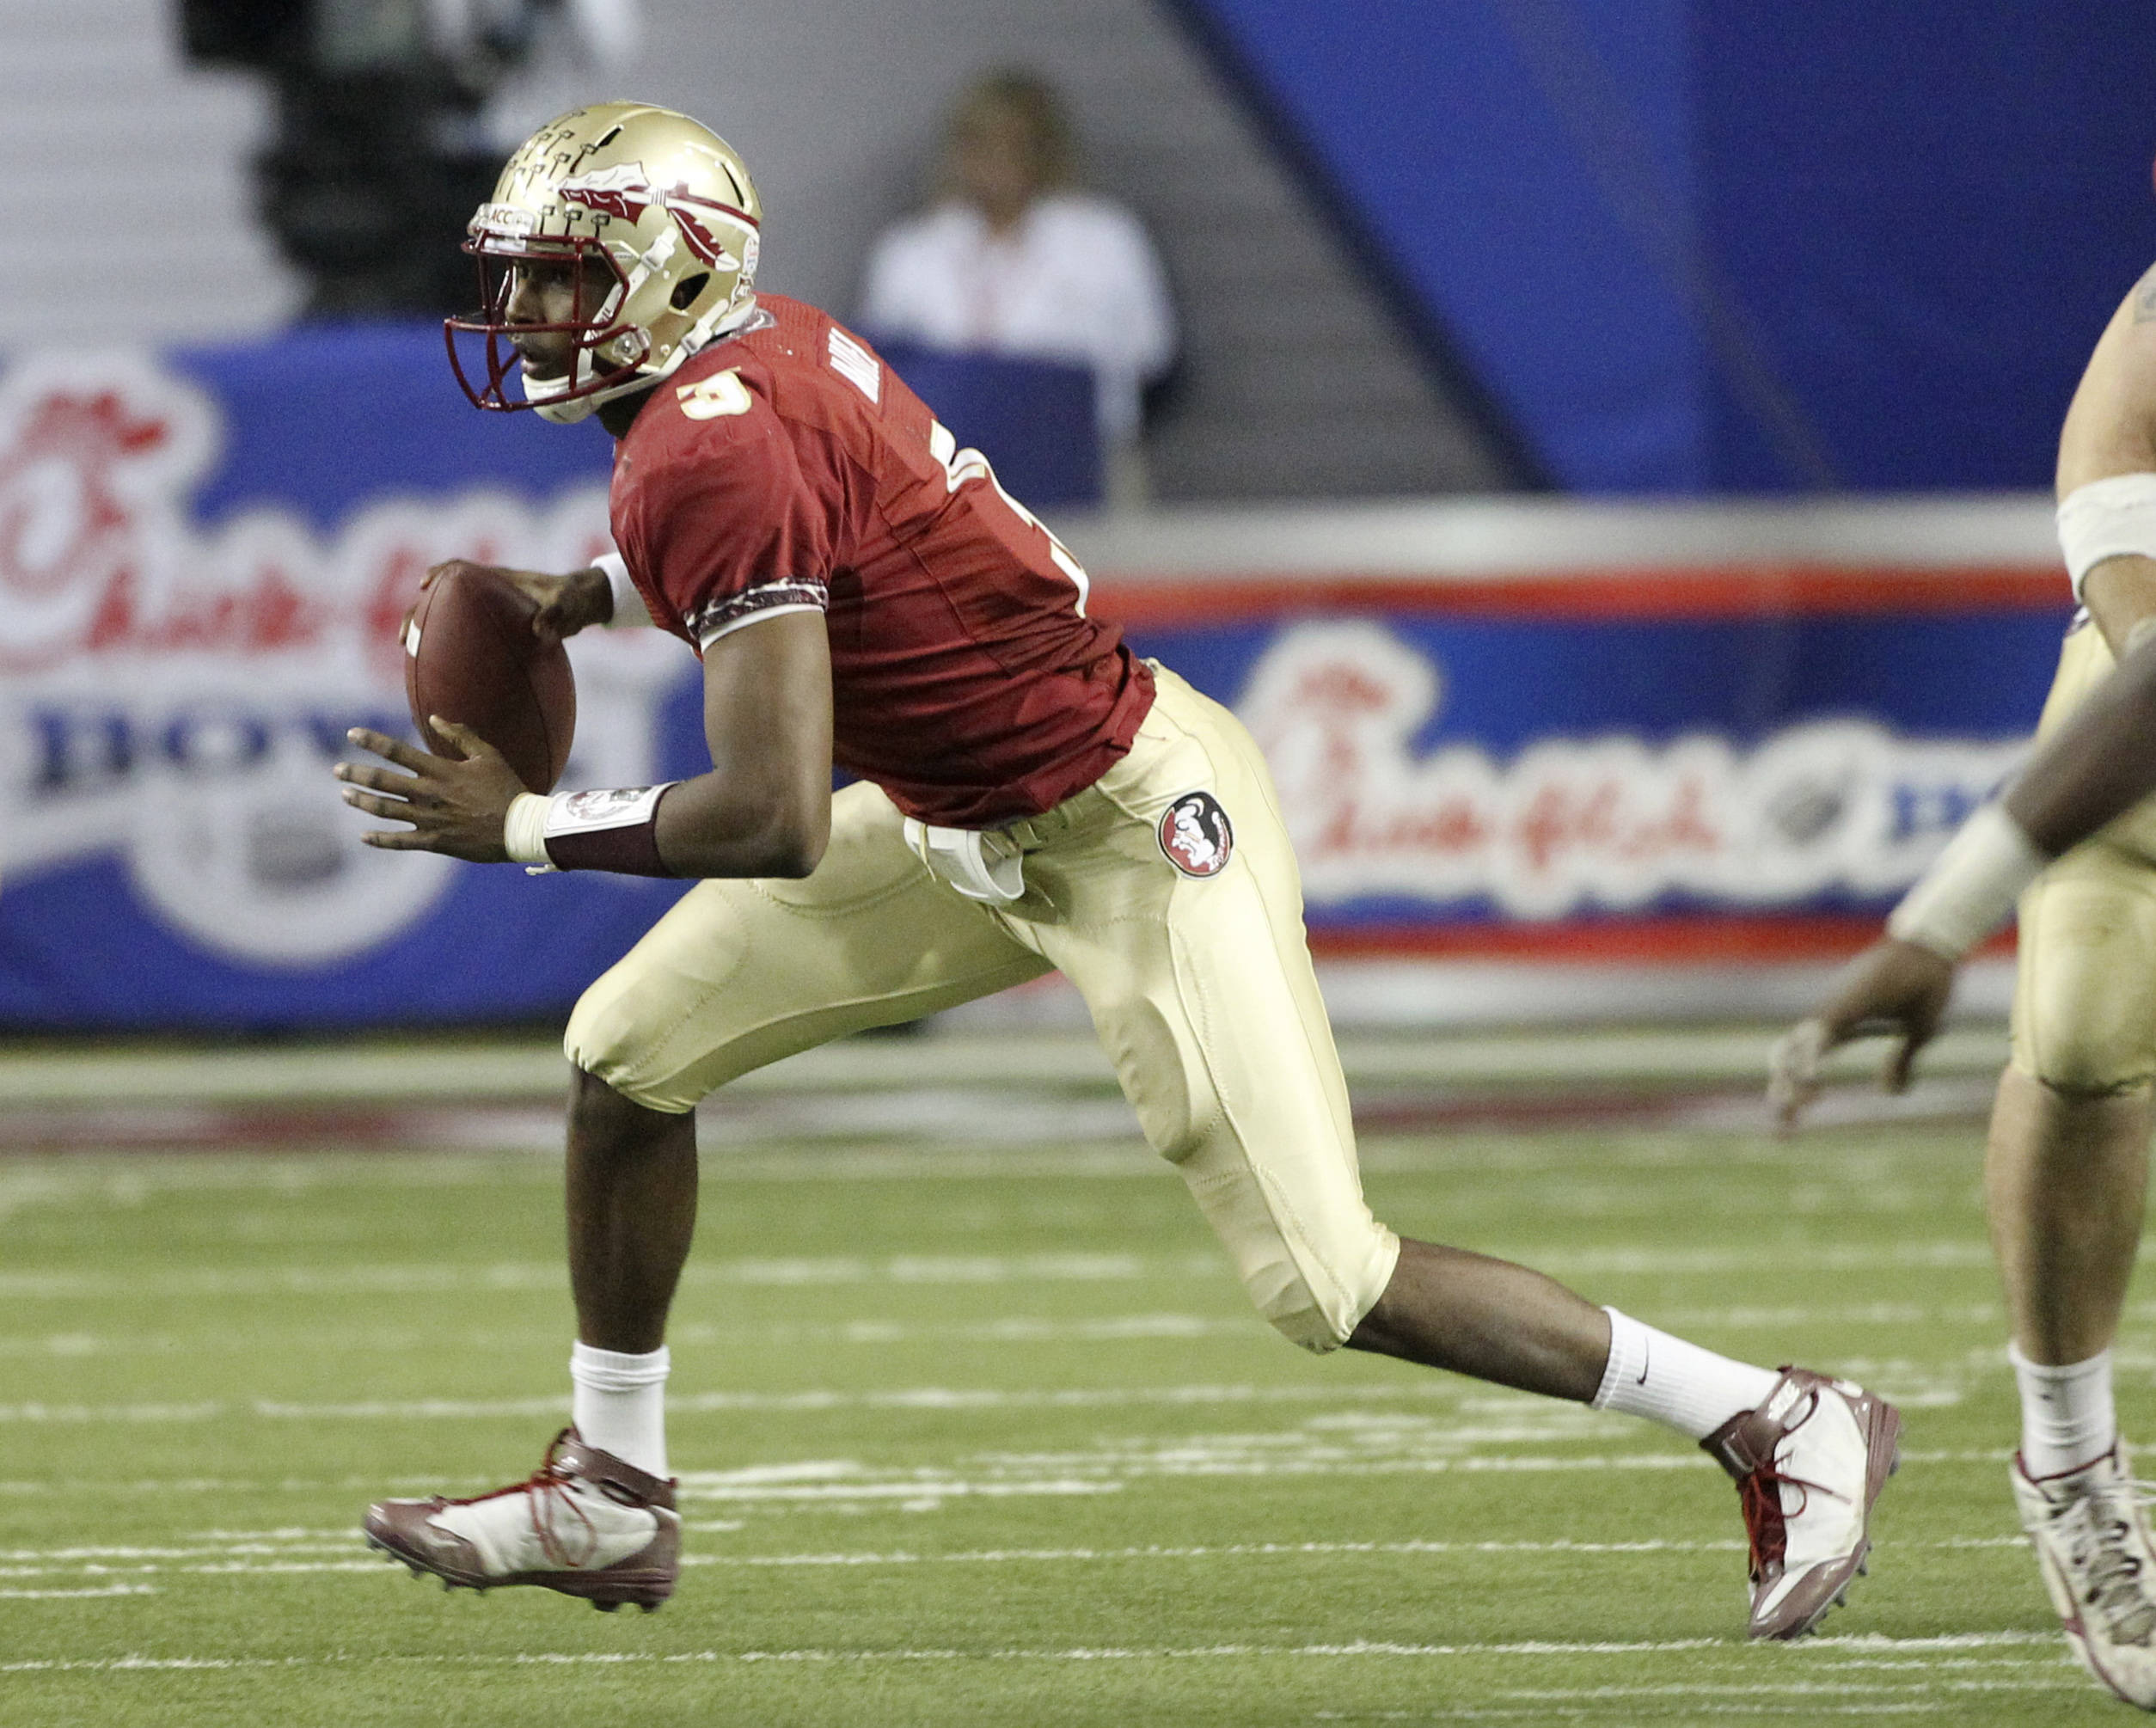 Florida State quarterback EJ Manuel (3) scrambles during the third quarter of the Chick-fil-A Bowl against South Carolina on Friday, Dec. 31, 2010, in Atlanta. Florida State won 26-17. (AP Photo/John Bazemore)